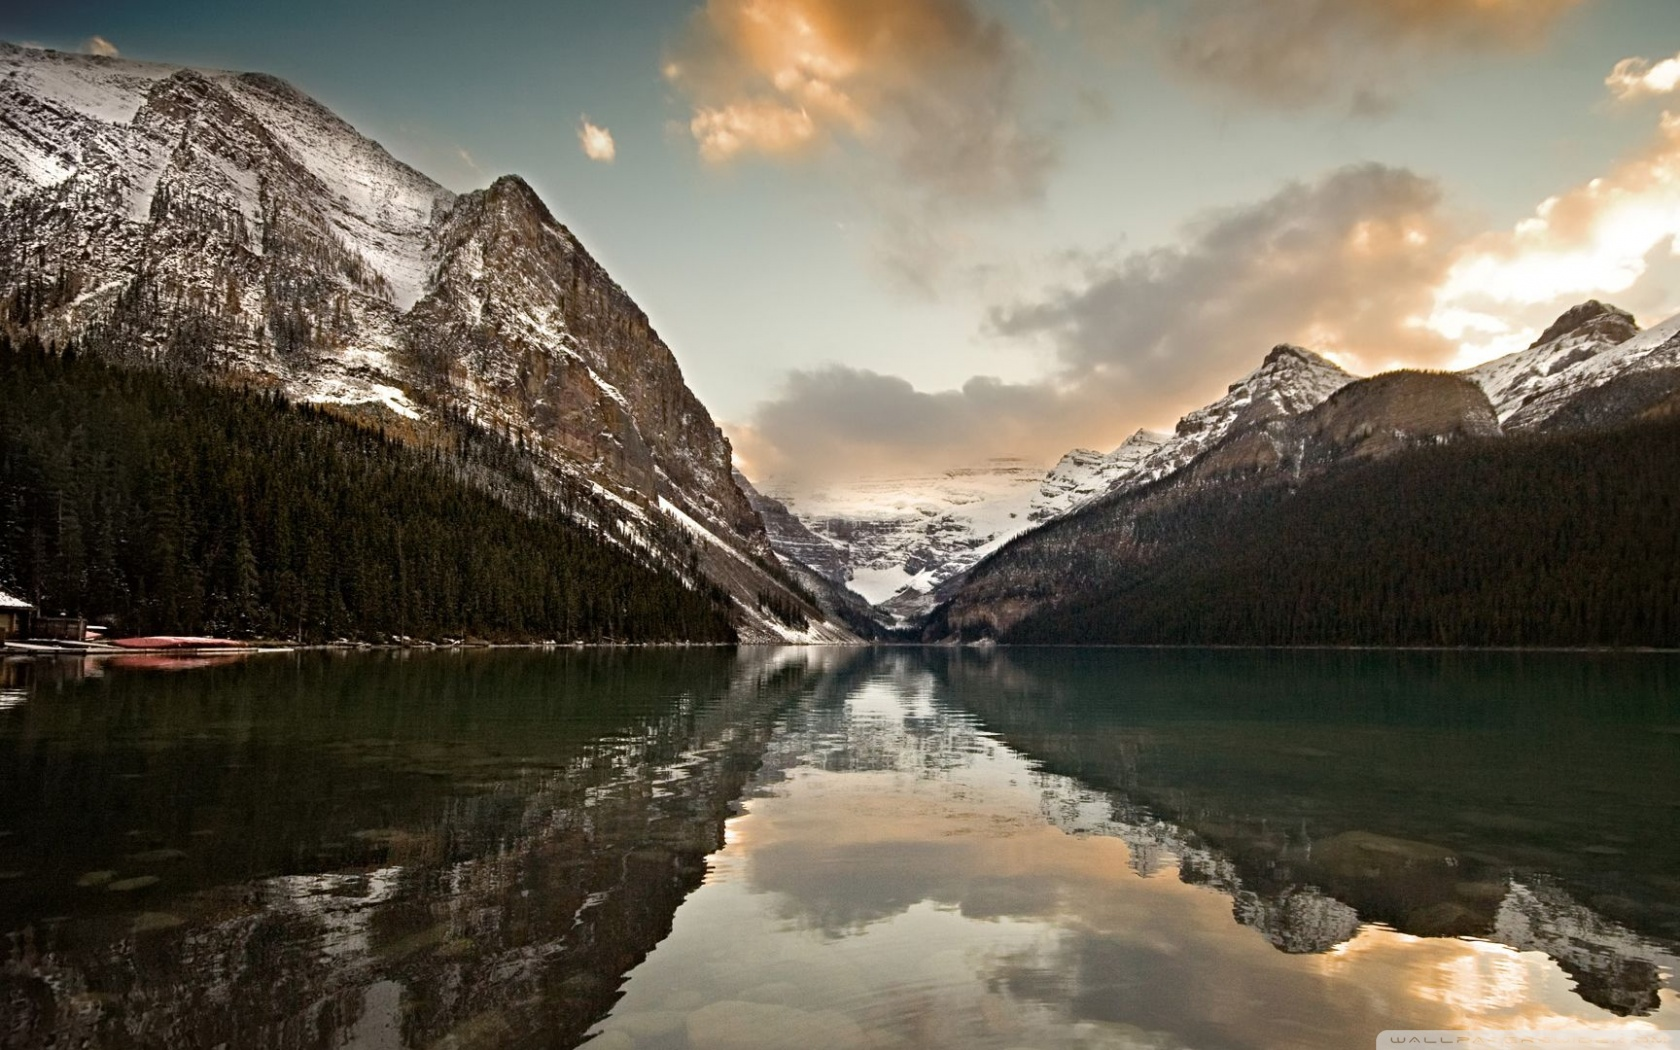 mountains_reflection_landscape-wallpaper-1680x1050